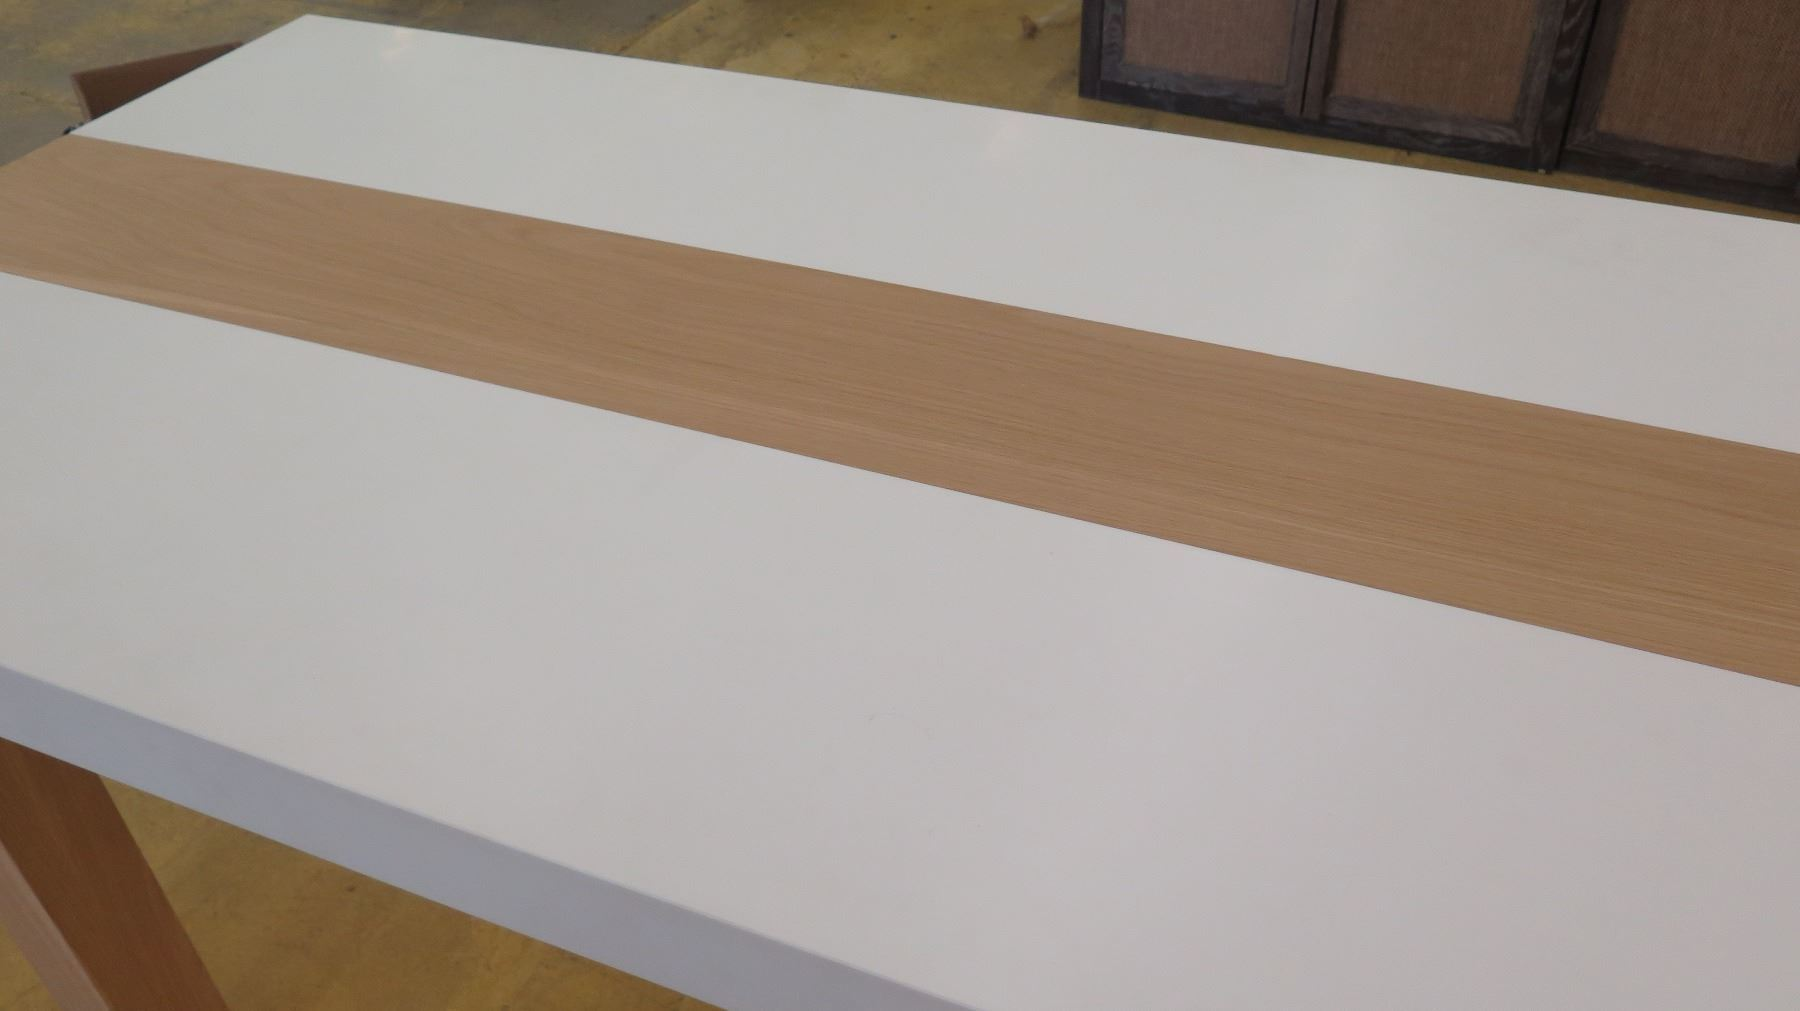 ... Image 3 : Tall Parsons Table   Natural Wood Legs, White Top, 6ft X ...